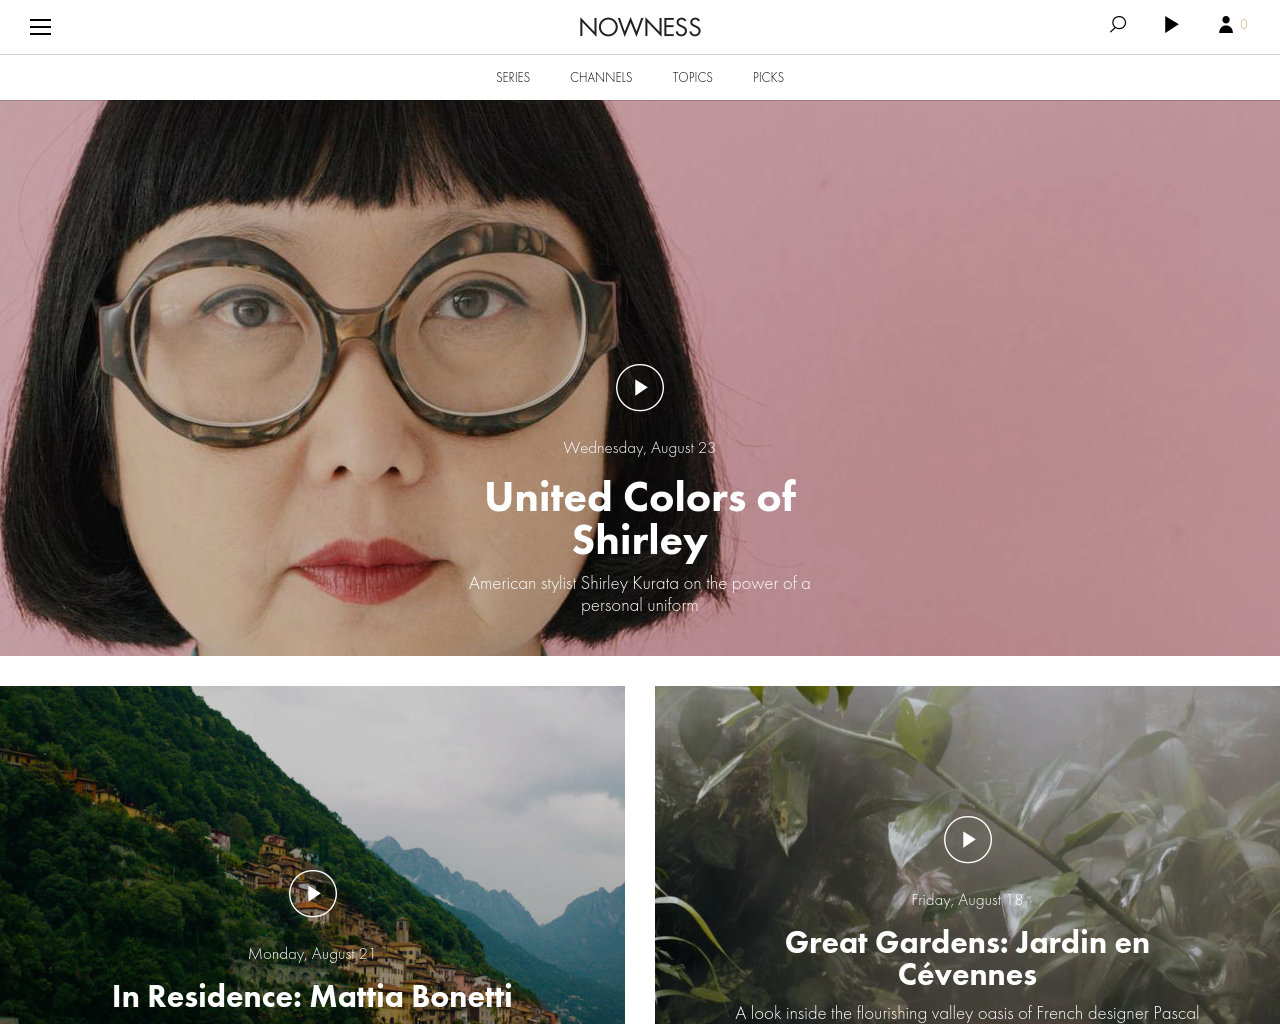 NOWNESS-Advertising-Reviews-Pricing